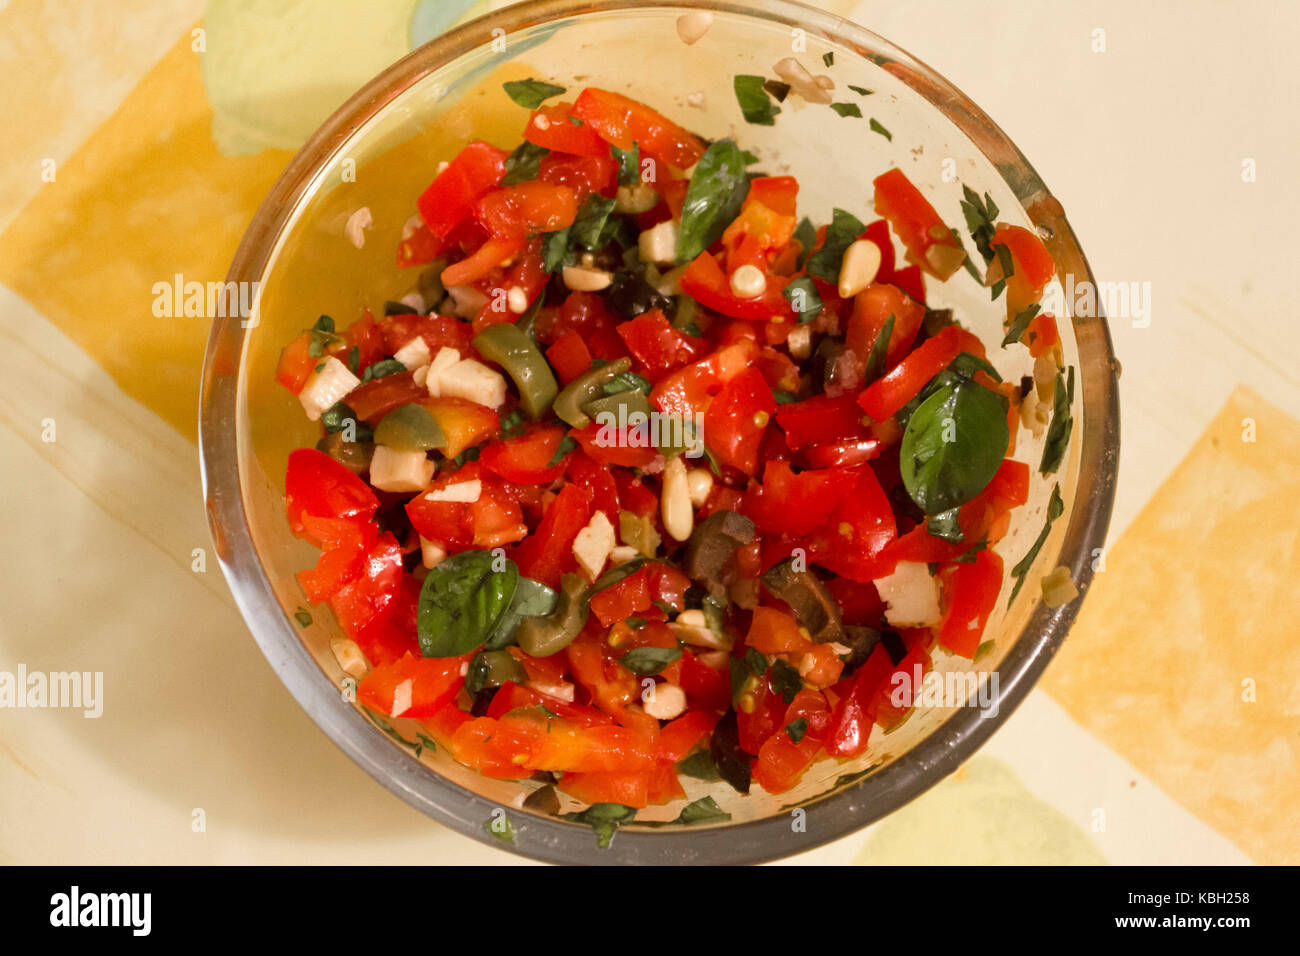 MASSA, ITALY - AUGUT 23 2015: fresh homemade sauce for pasta, vegetarian with pine nuts, tomatoes, basil and olives Stock Photo